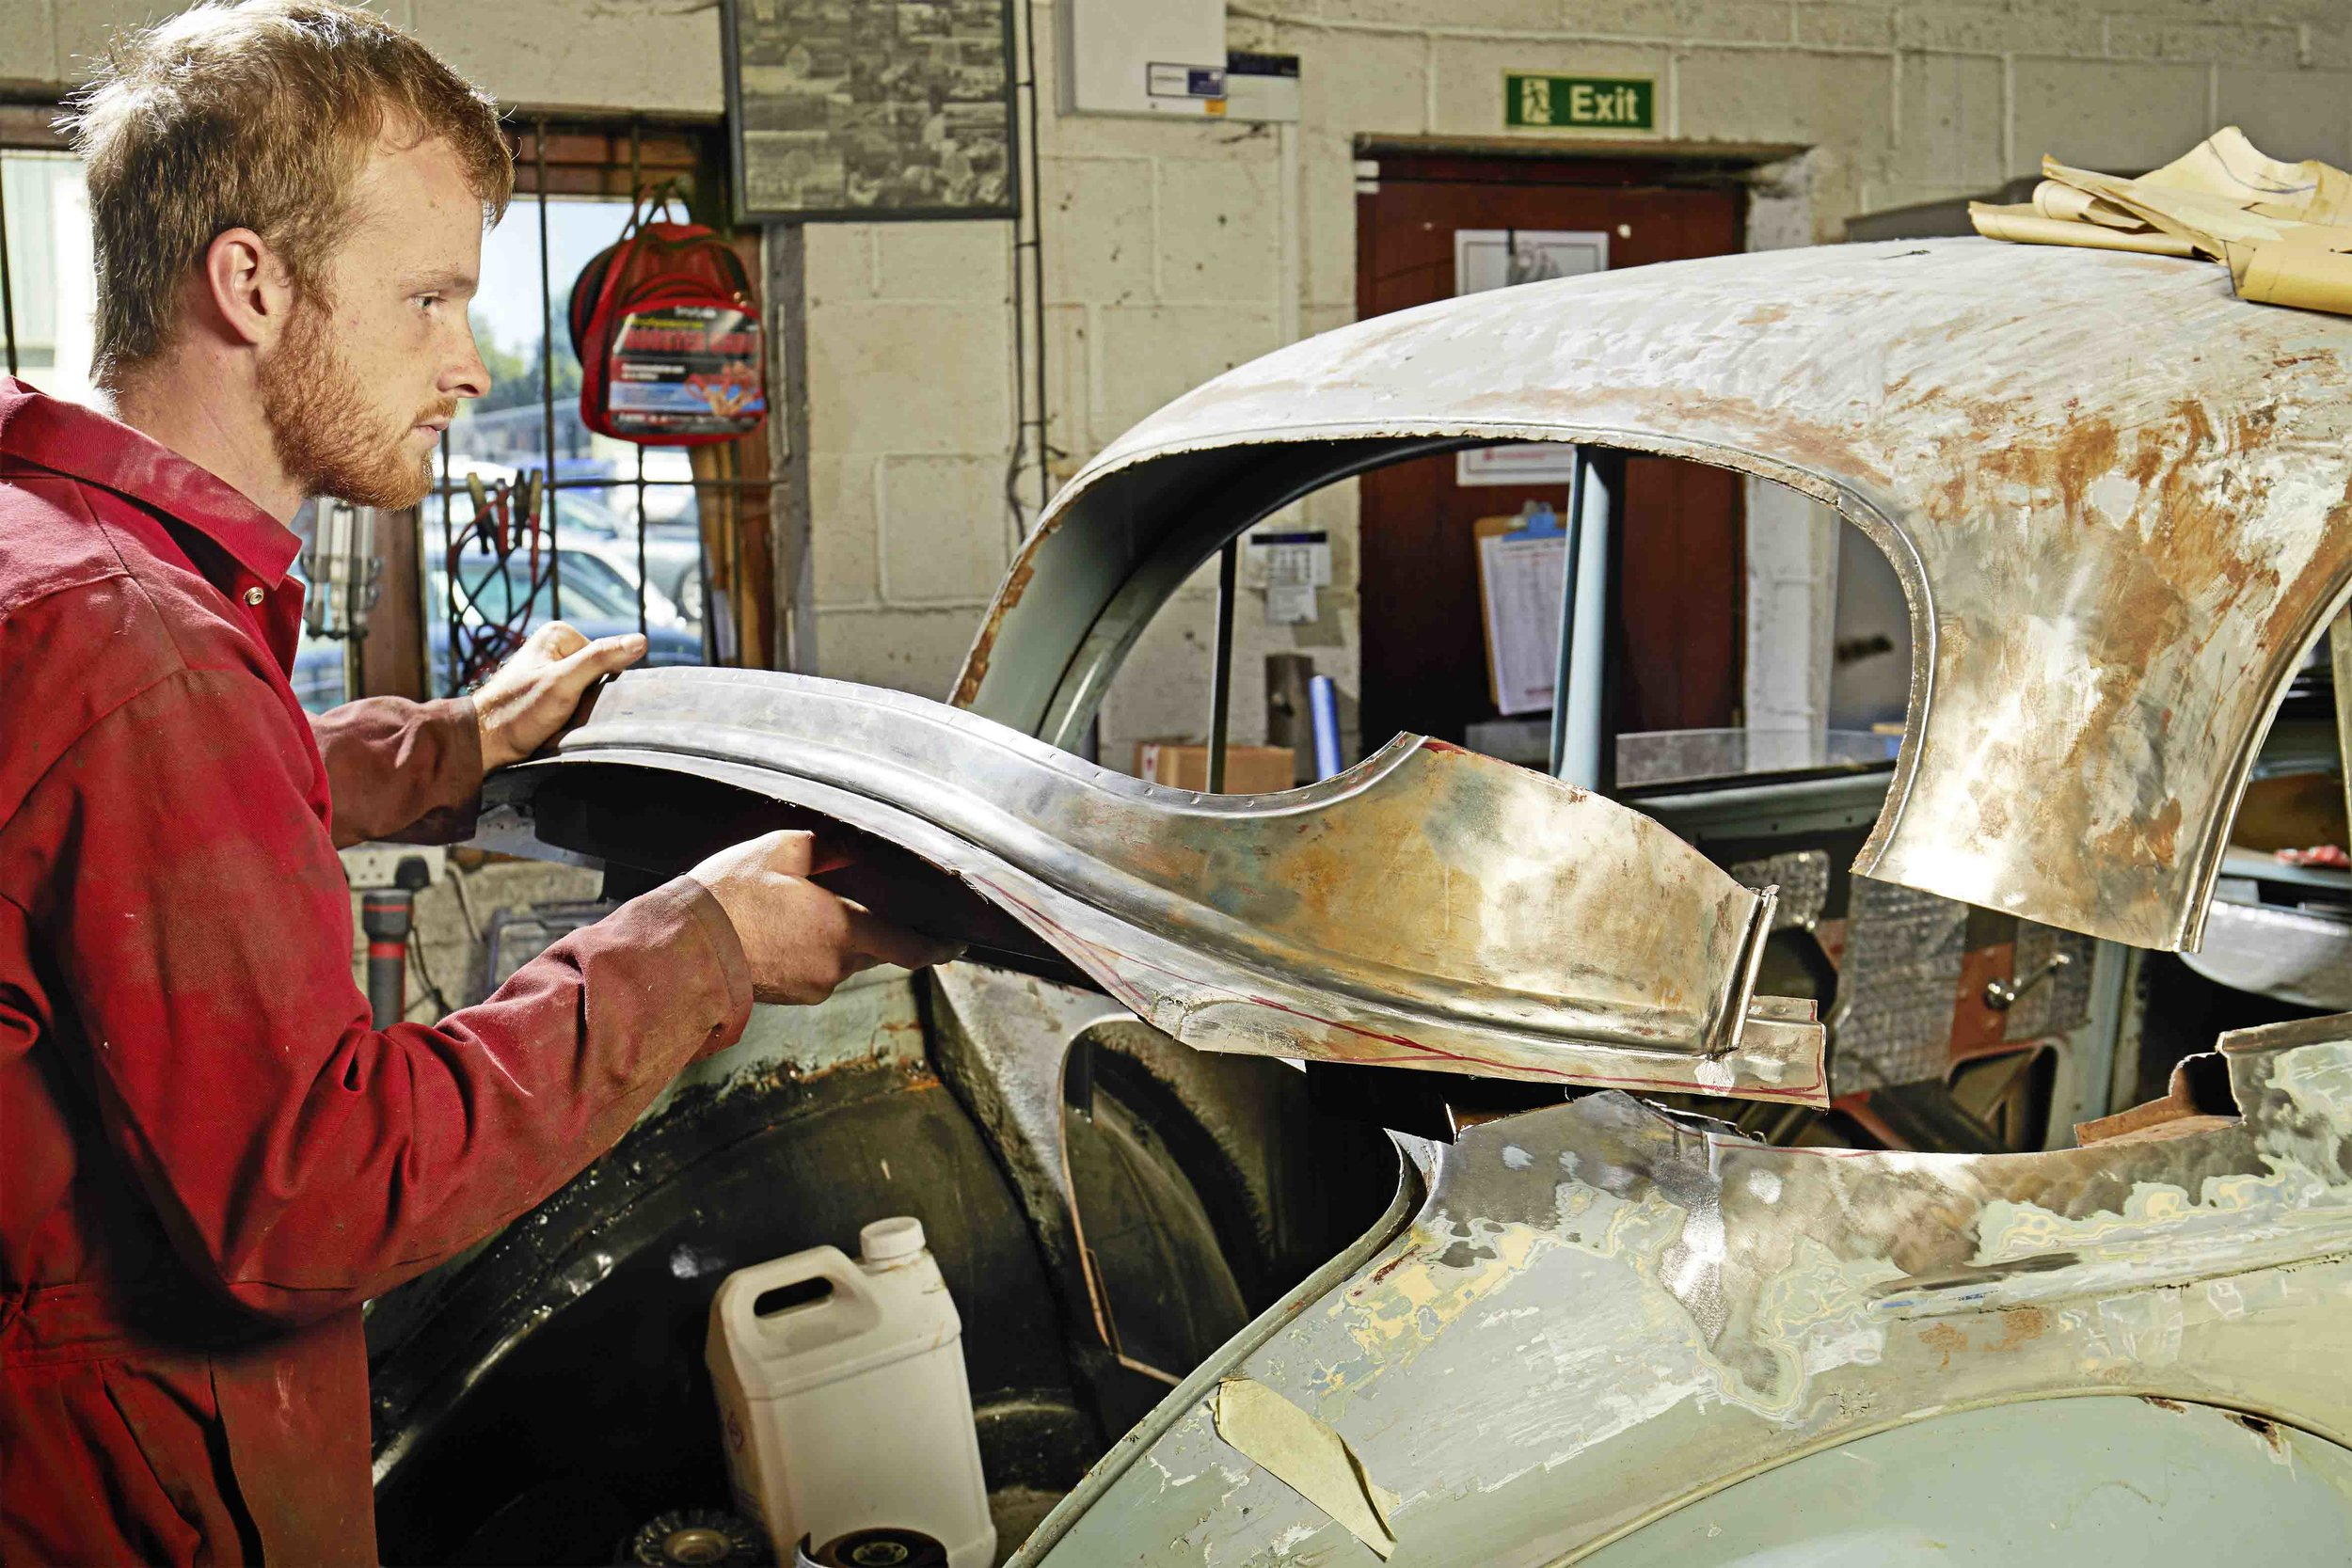 We've got so much tech advice this month! Anything from brake hose tips to metal shaping, plus news of our own restorations, from our Riley NEC show car – which will be rebuilt on stage at the Classic Motor Show this year – to team projects including a Triumph TR6, Saab 96 V4, Morris Minor and many more!